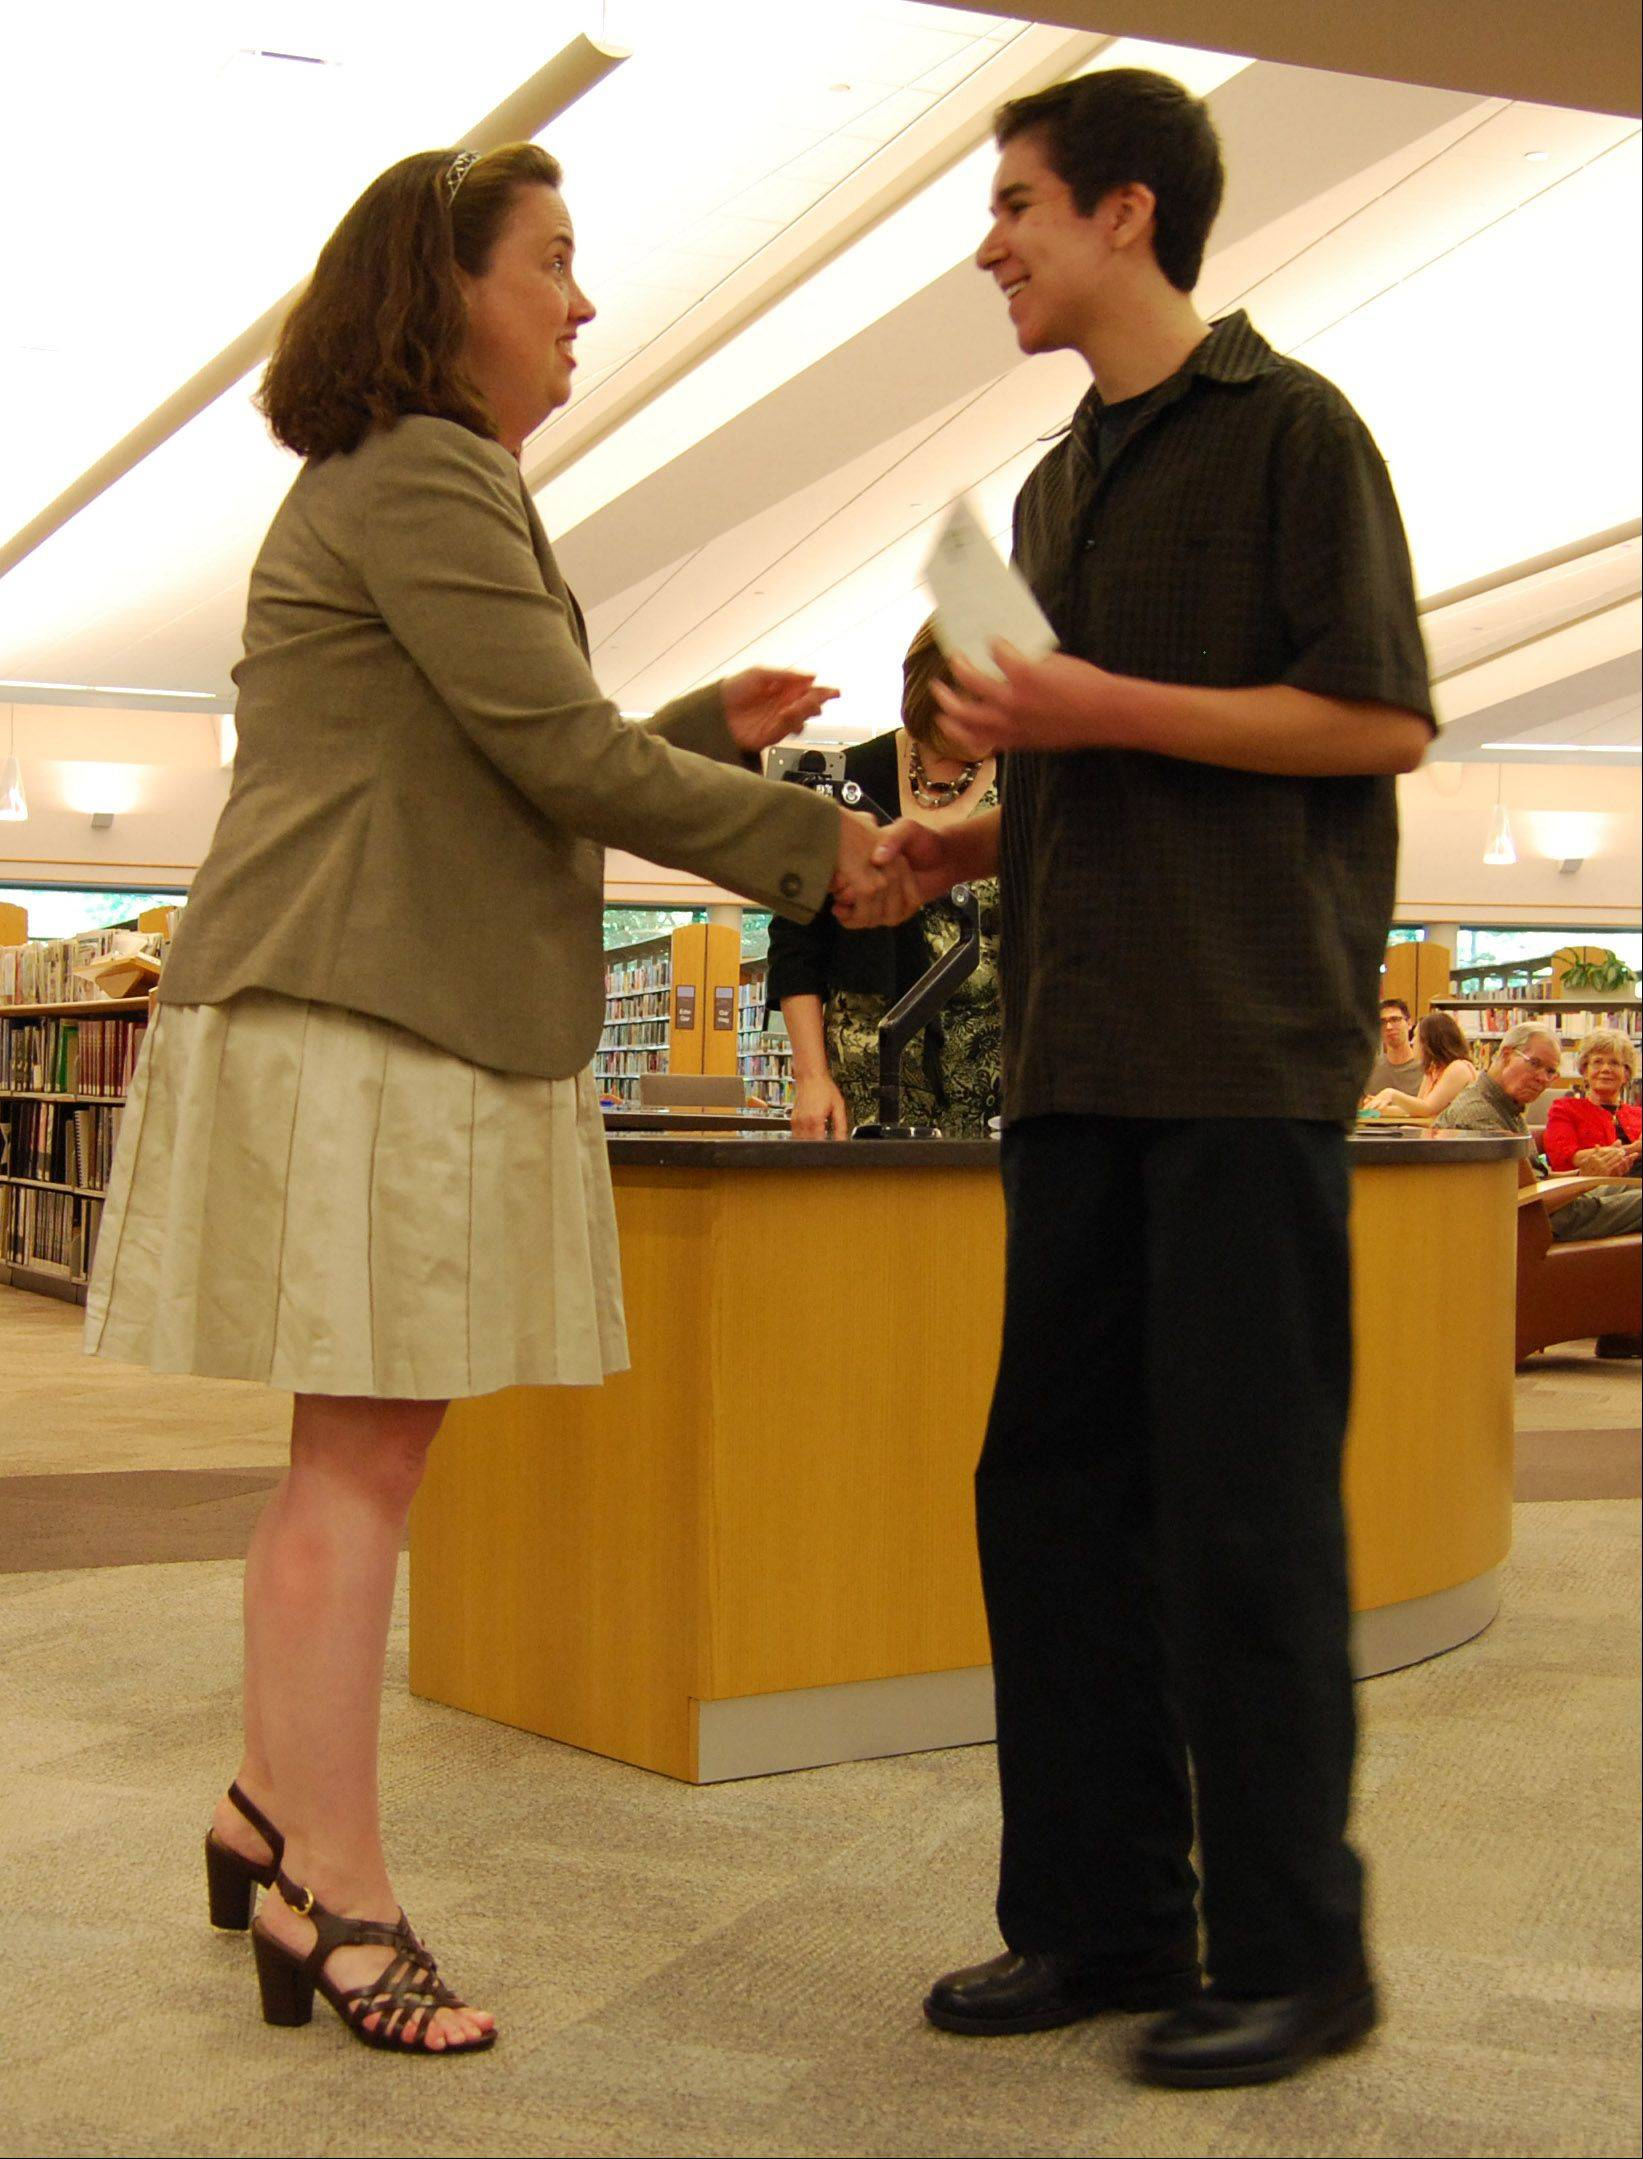 Angie Goodrich, president of the Friends of the Vernon Area Library, presents Stevenson High School senior Jeffrey Epstein with the first honorable mention award of the annual Allen E. Meyer Memorial Scholarship.